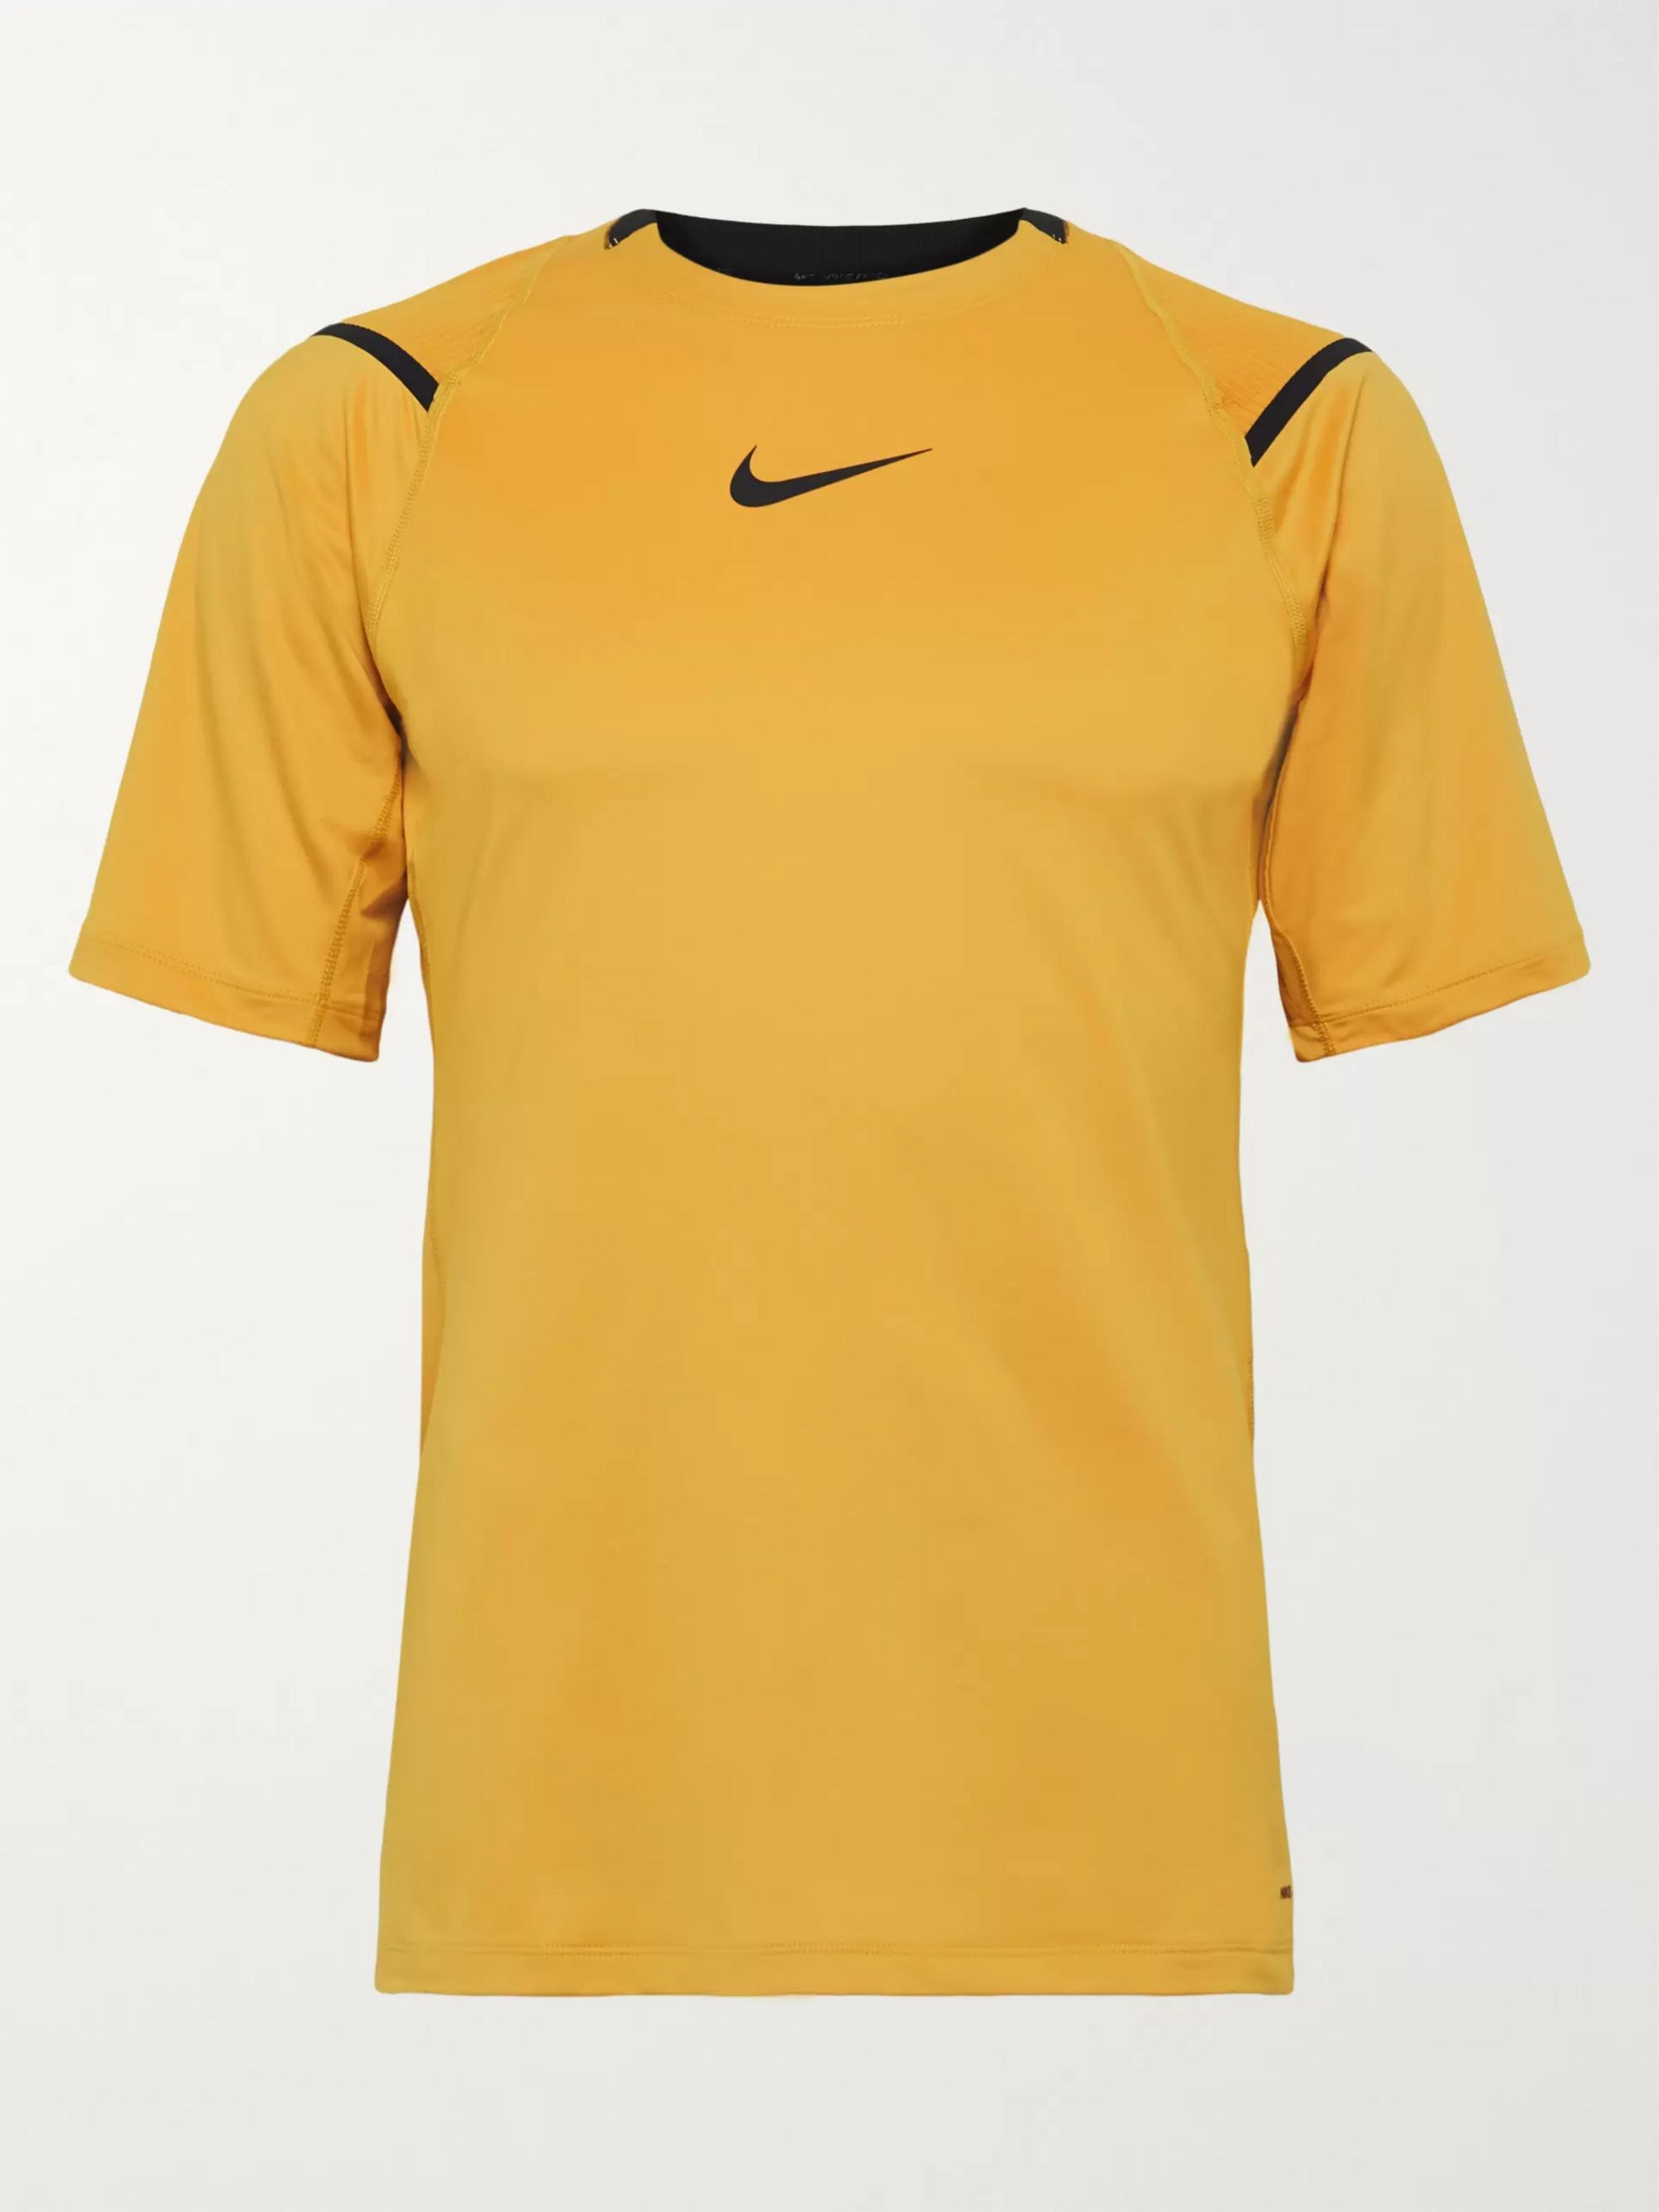 nike shirt yellow